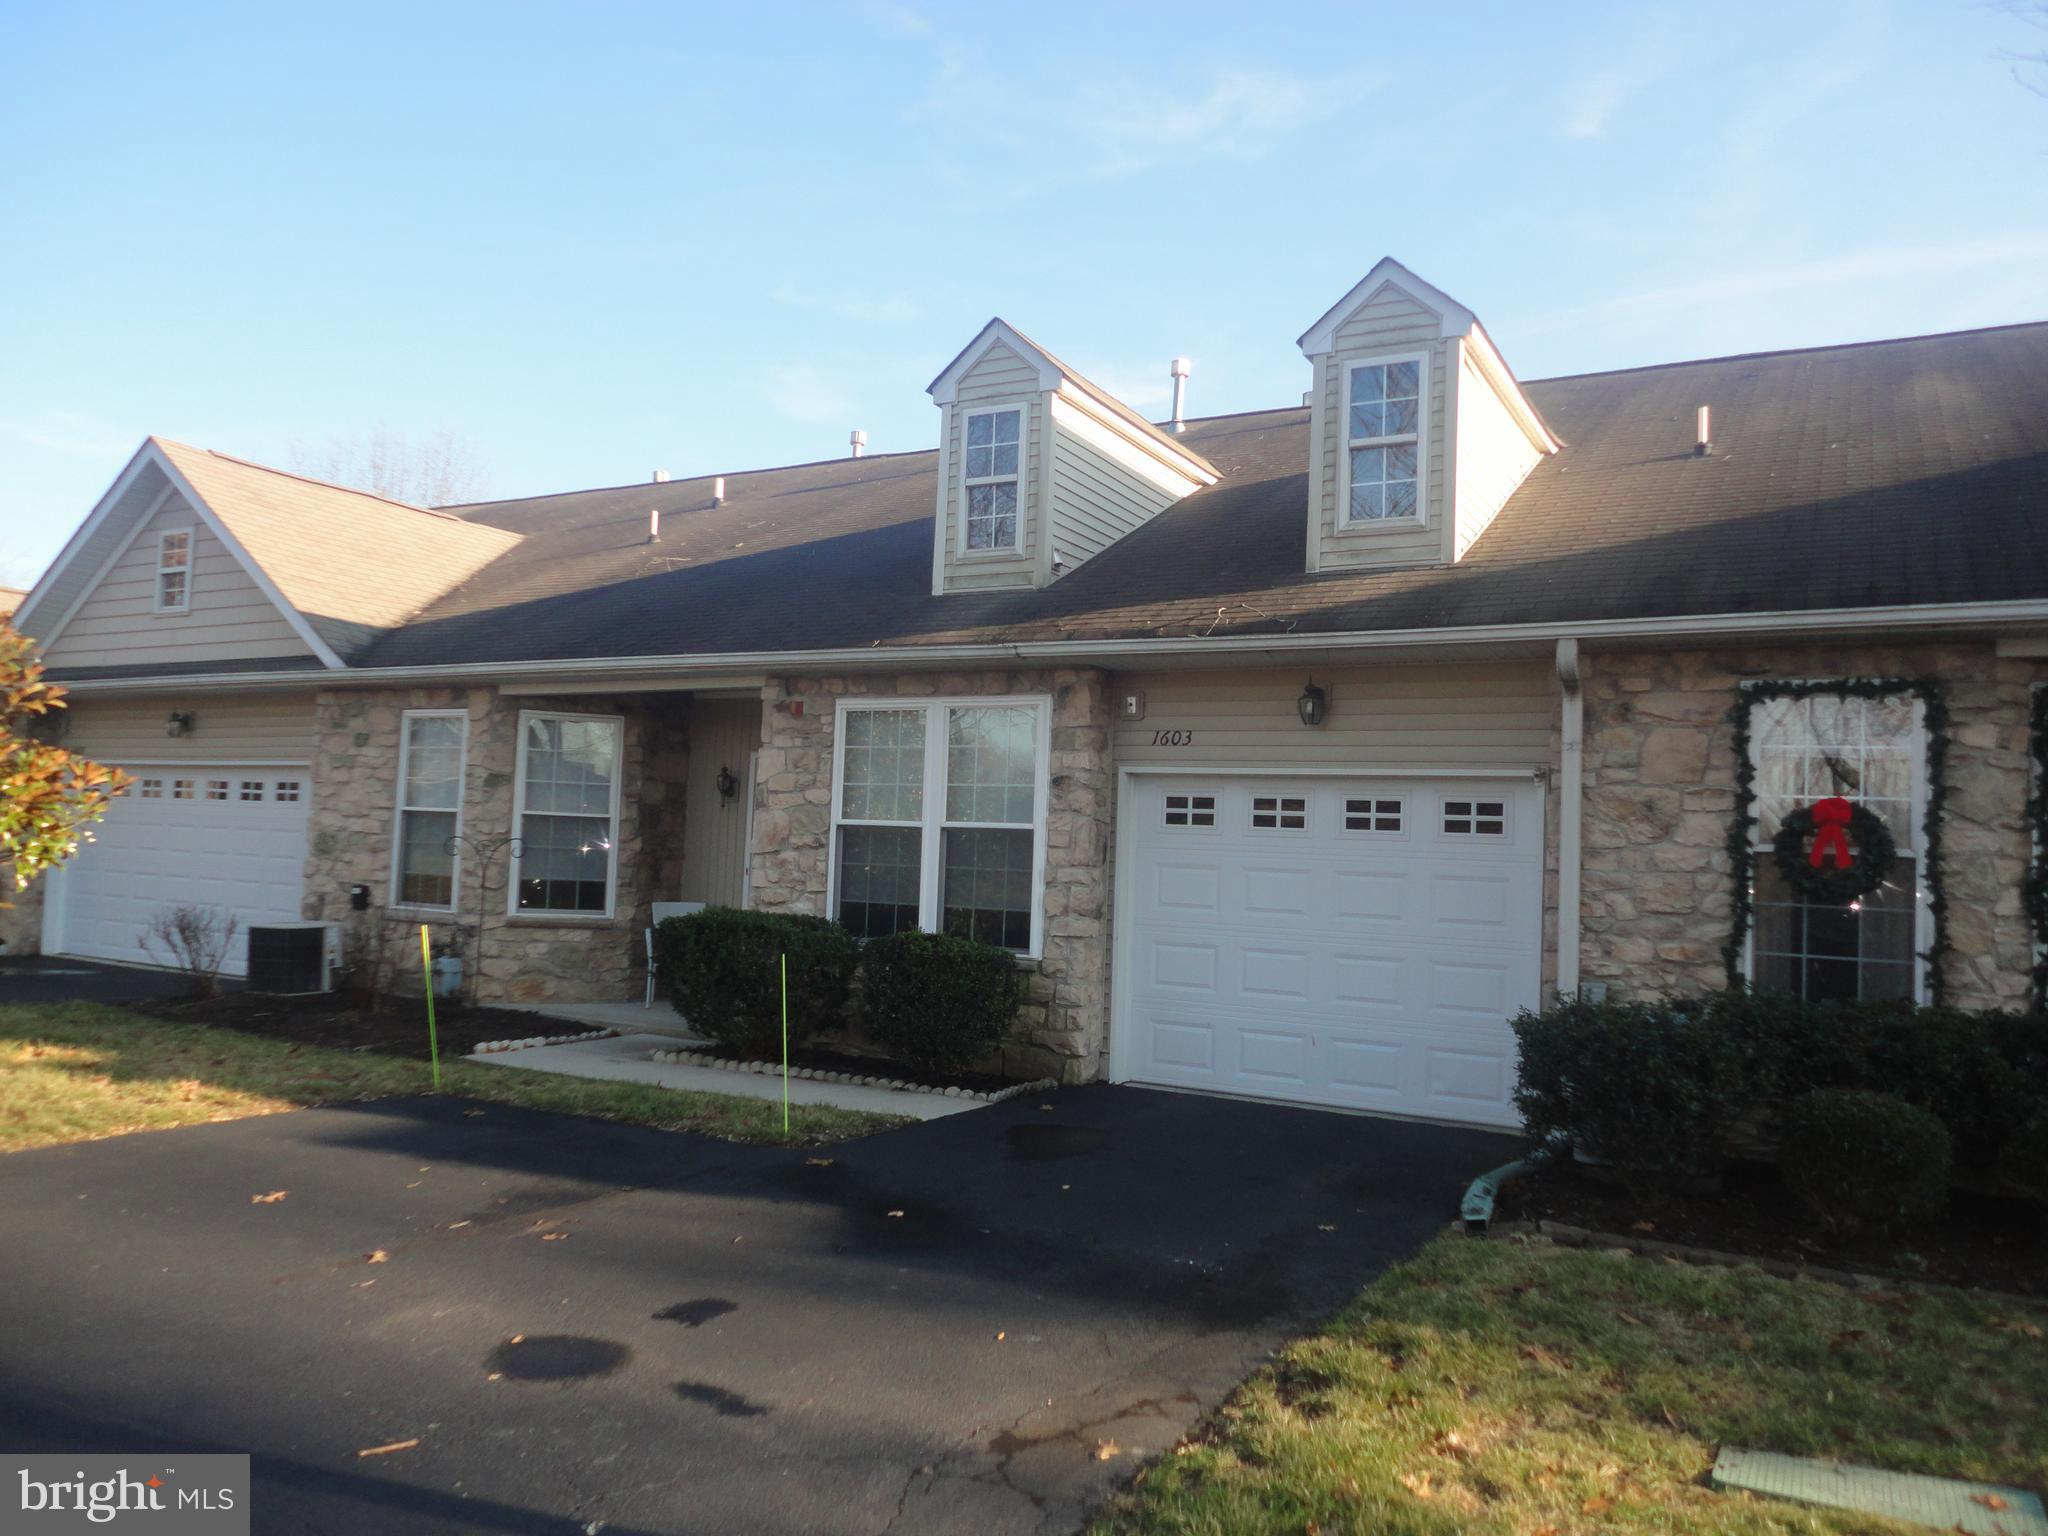 1603 COUNTRY CLUB DRIVE, SPRINGFIELD, PA 19064